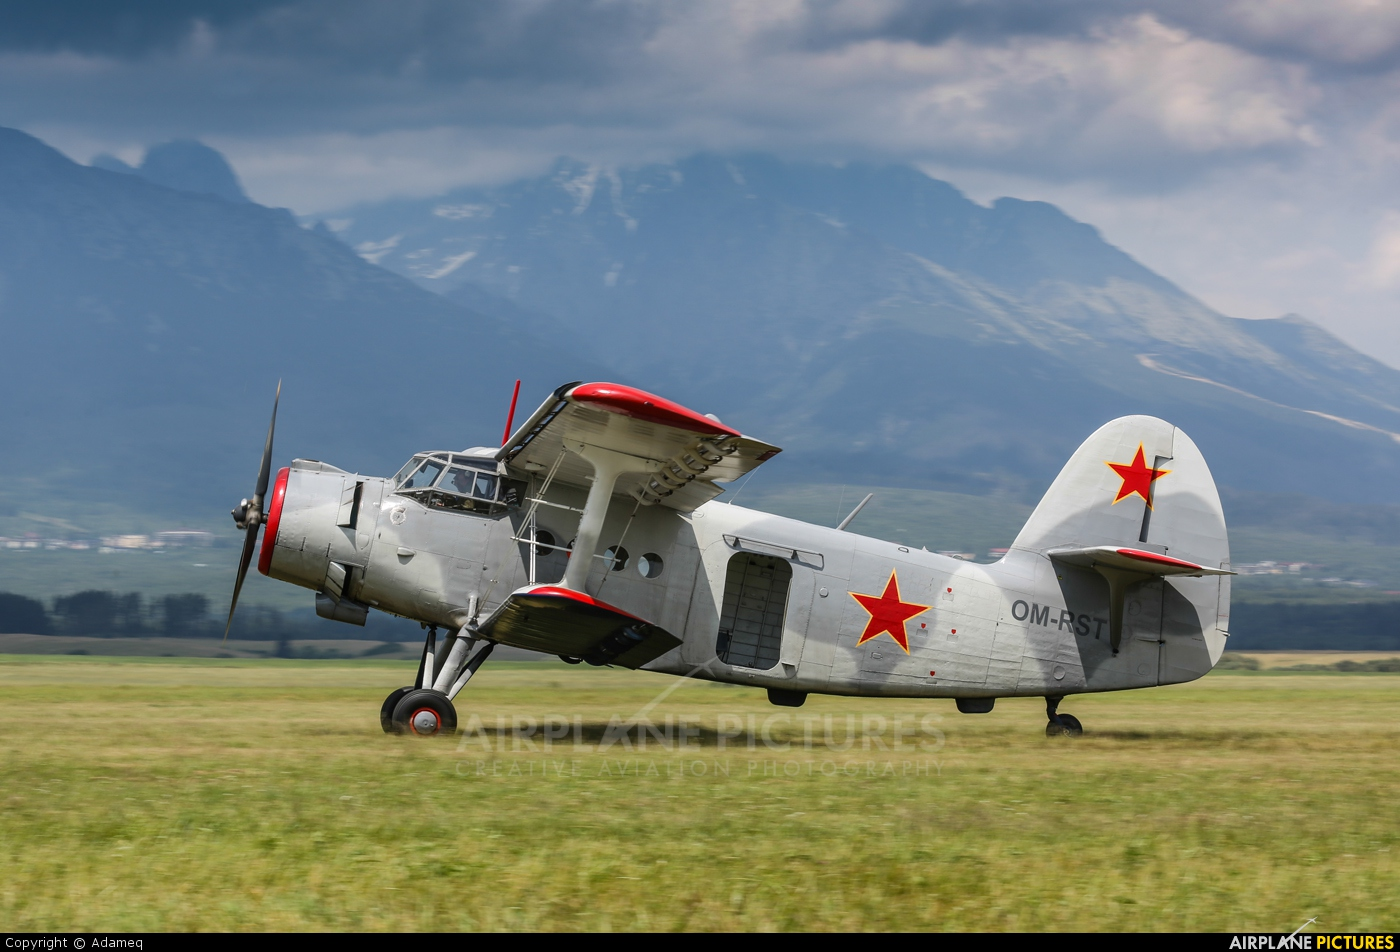 Private OM-RST aircraft at Poprad - Tatry